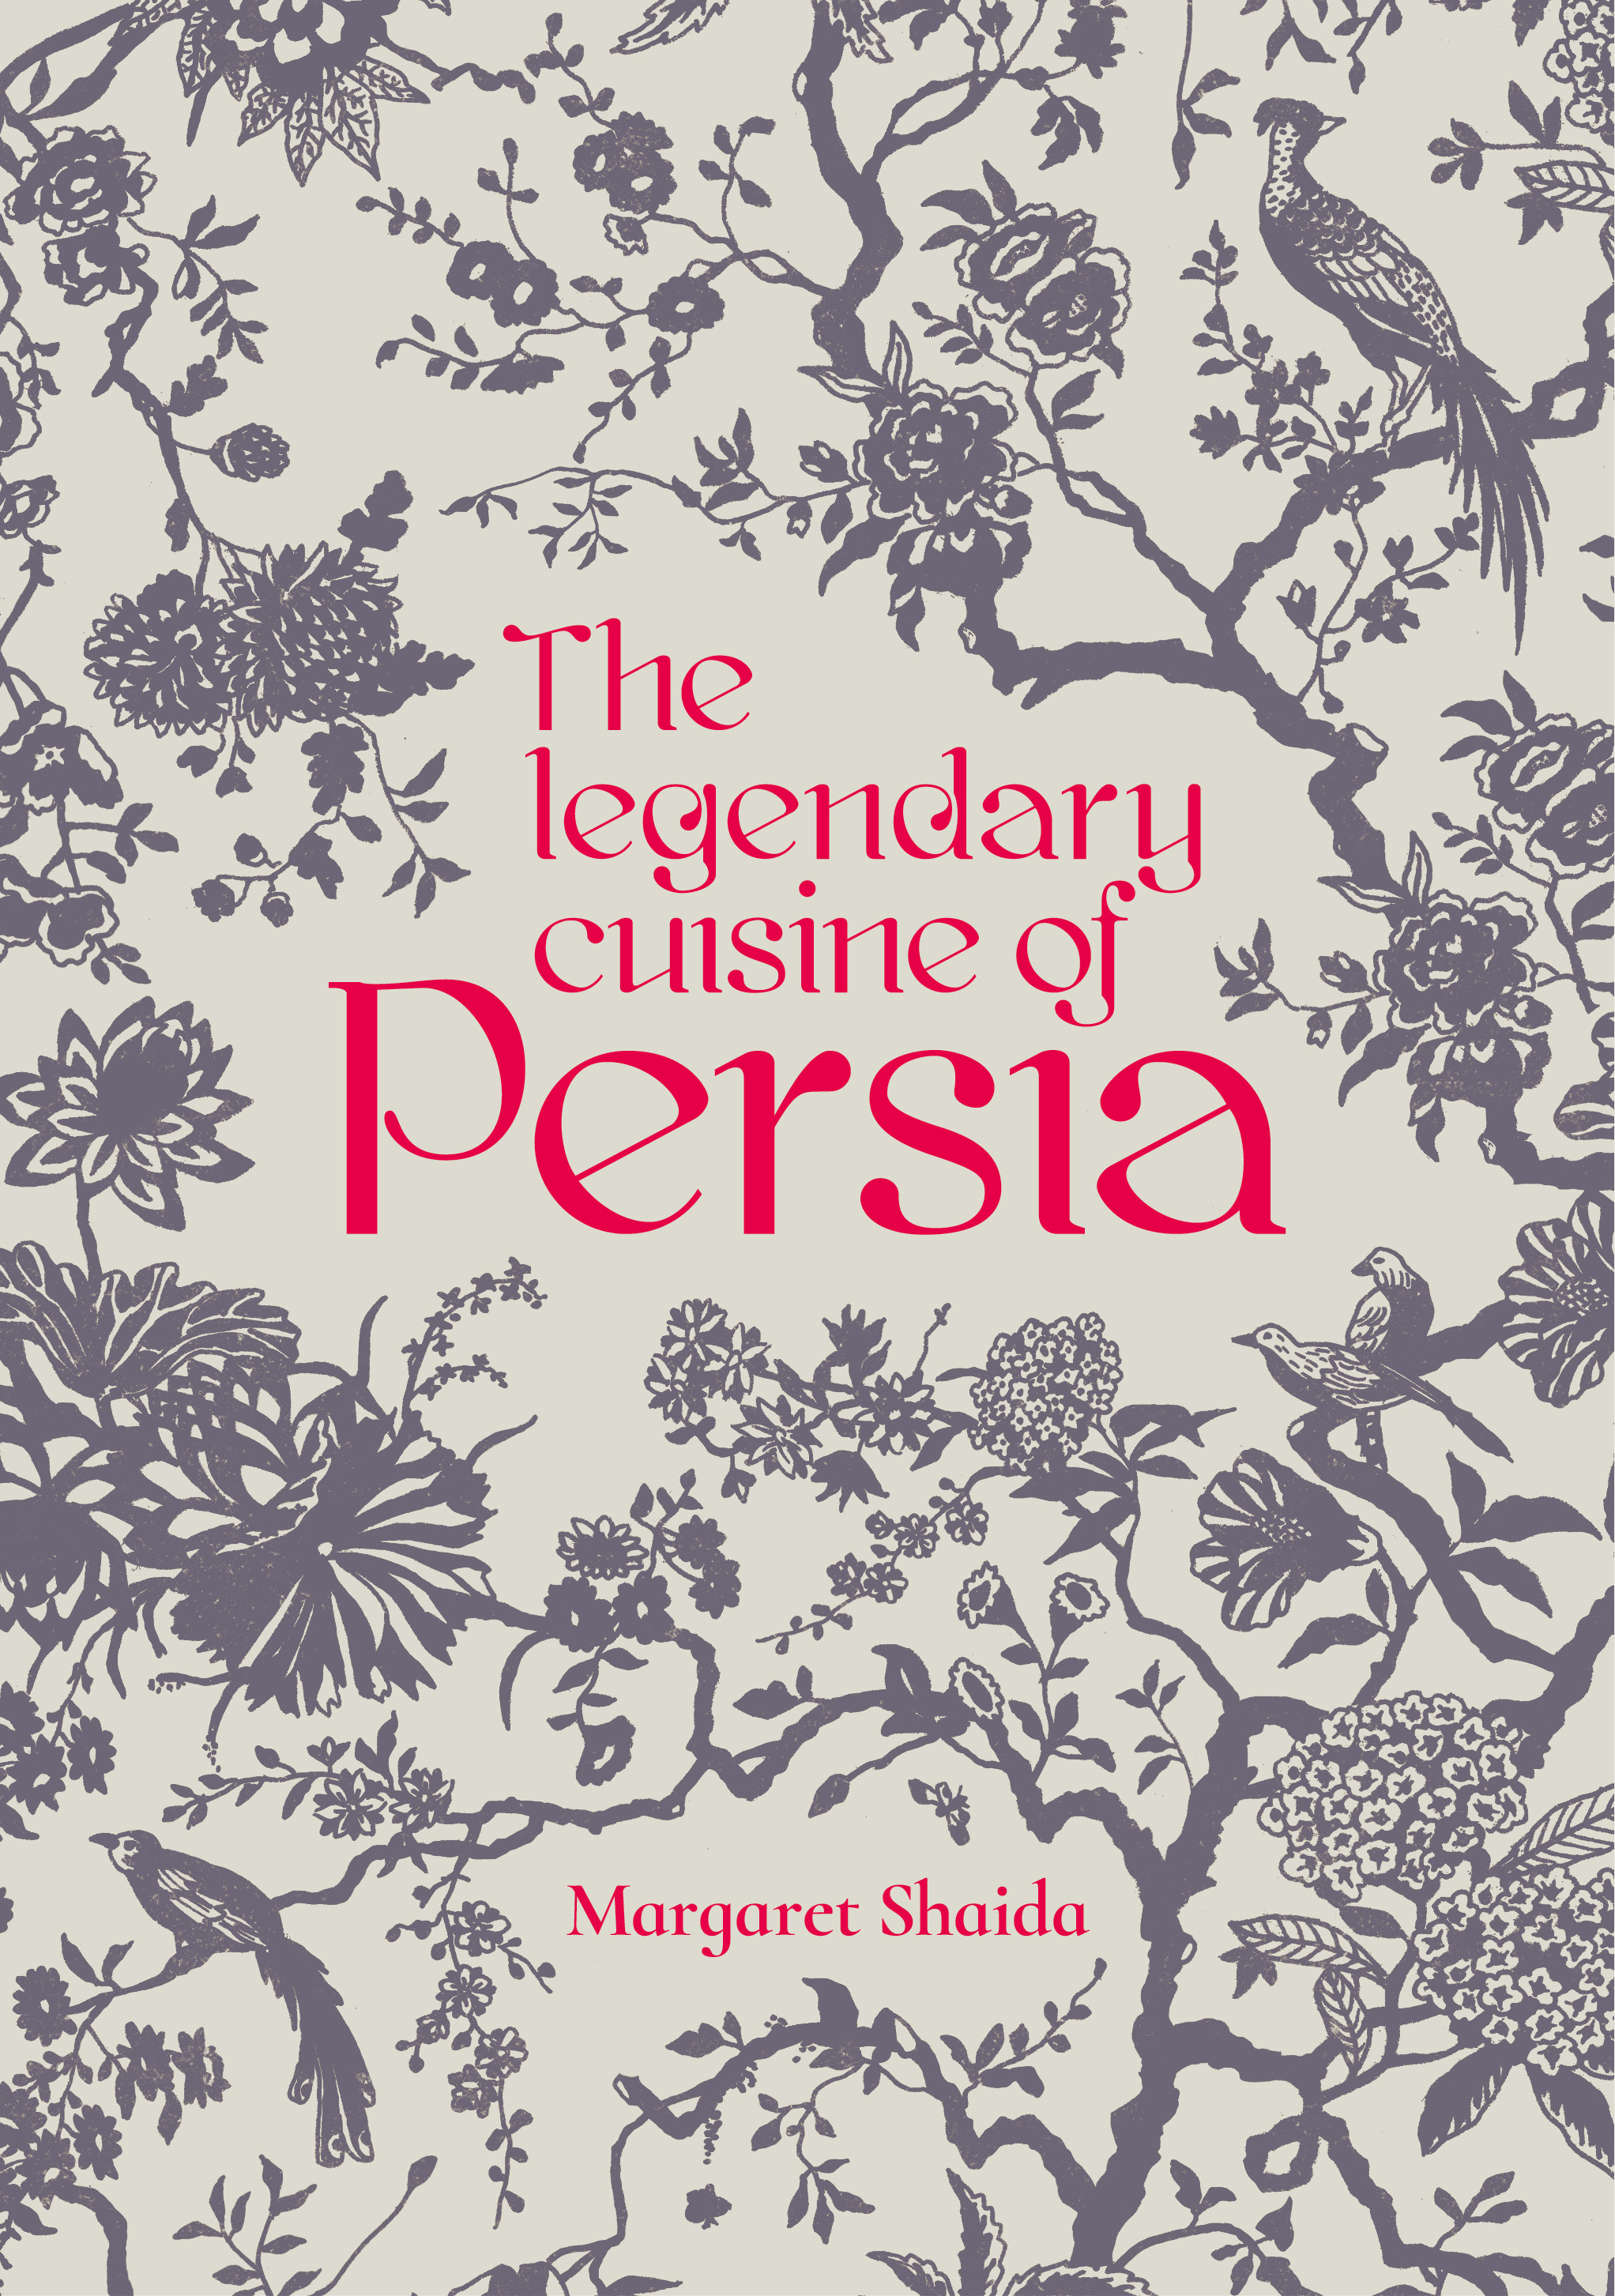 The Legendary Cuisine of Persia by Margaret Shaida (Book Review)